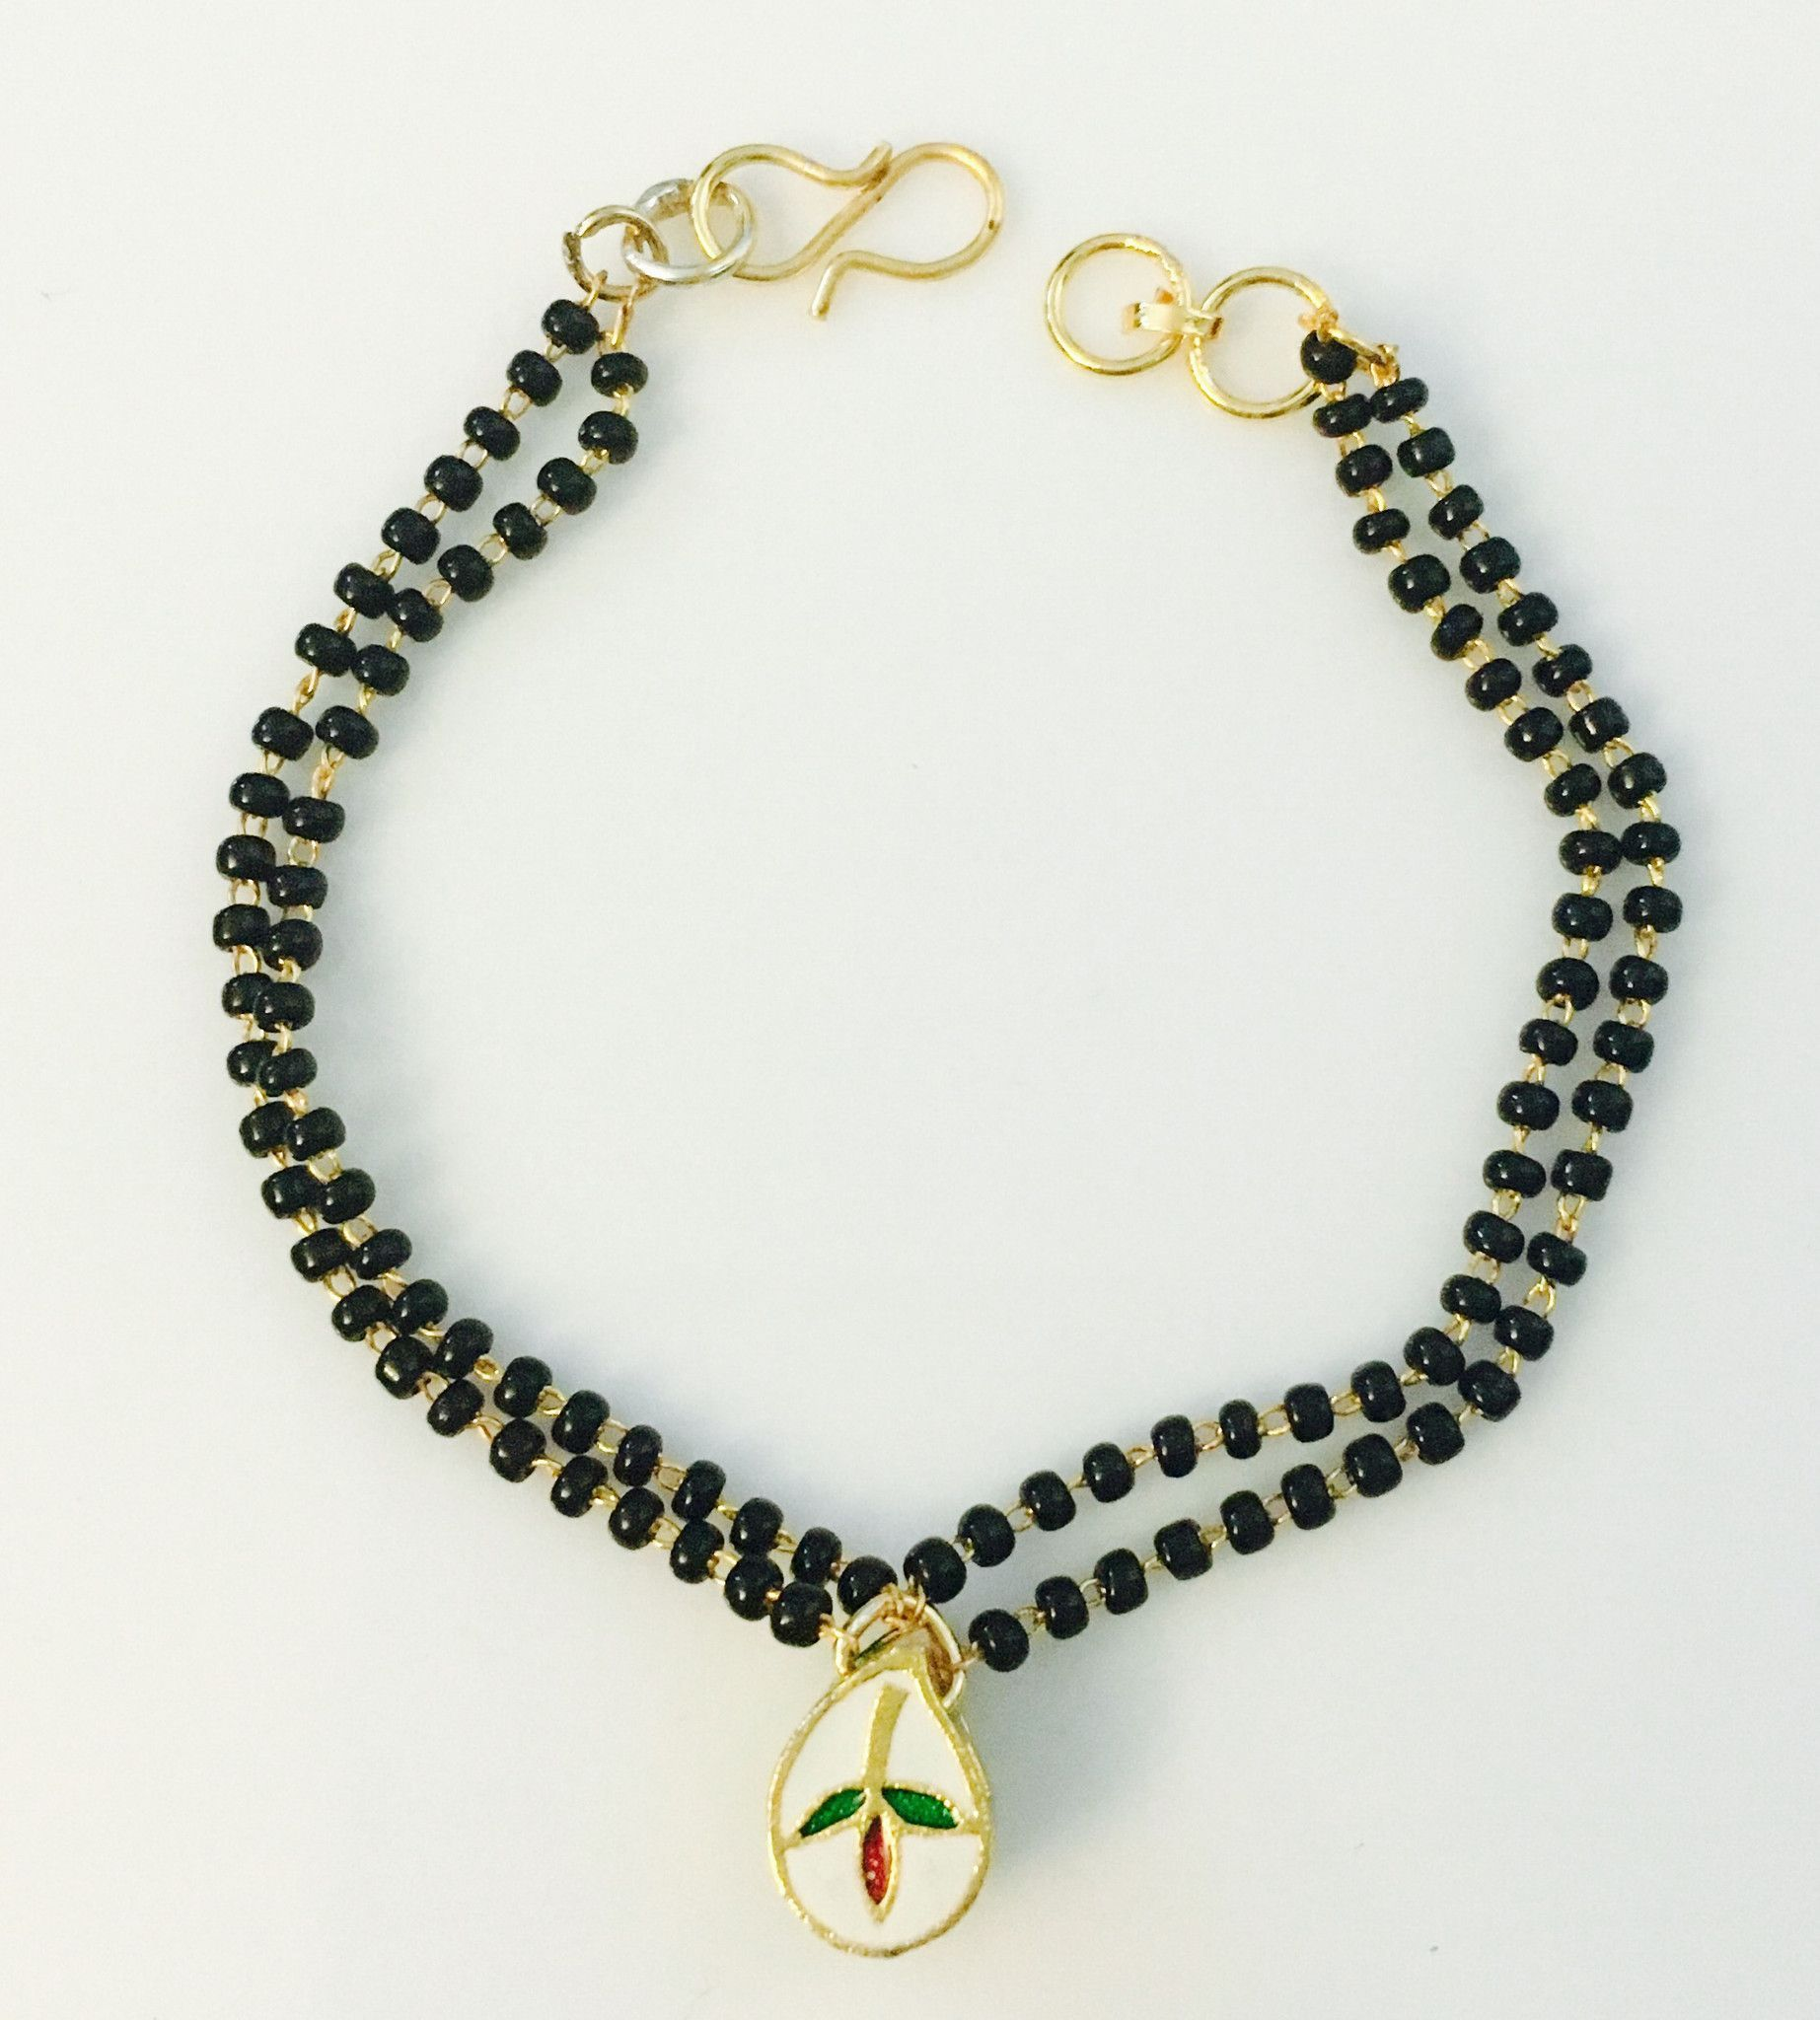 bd6a11045eaa24 modern yet traditional mangalsutra bracelets made famous by shilpa shetty.  can fit sizes 2.4 to 2.8